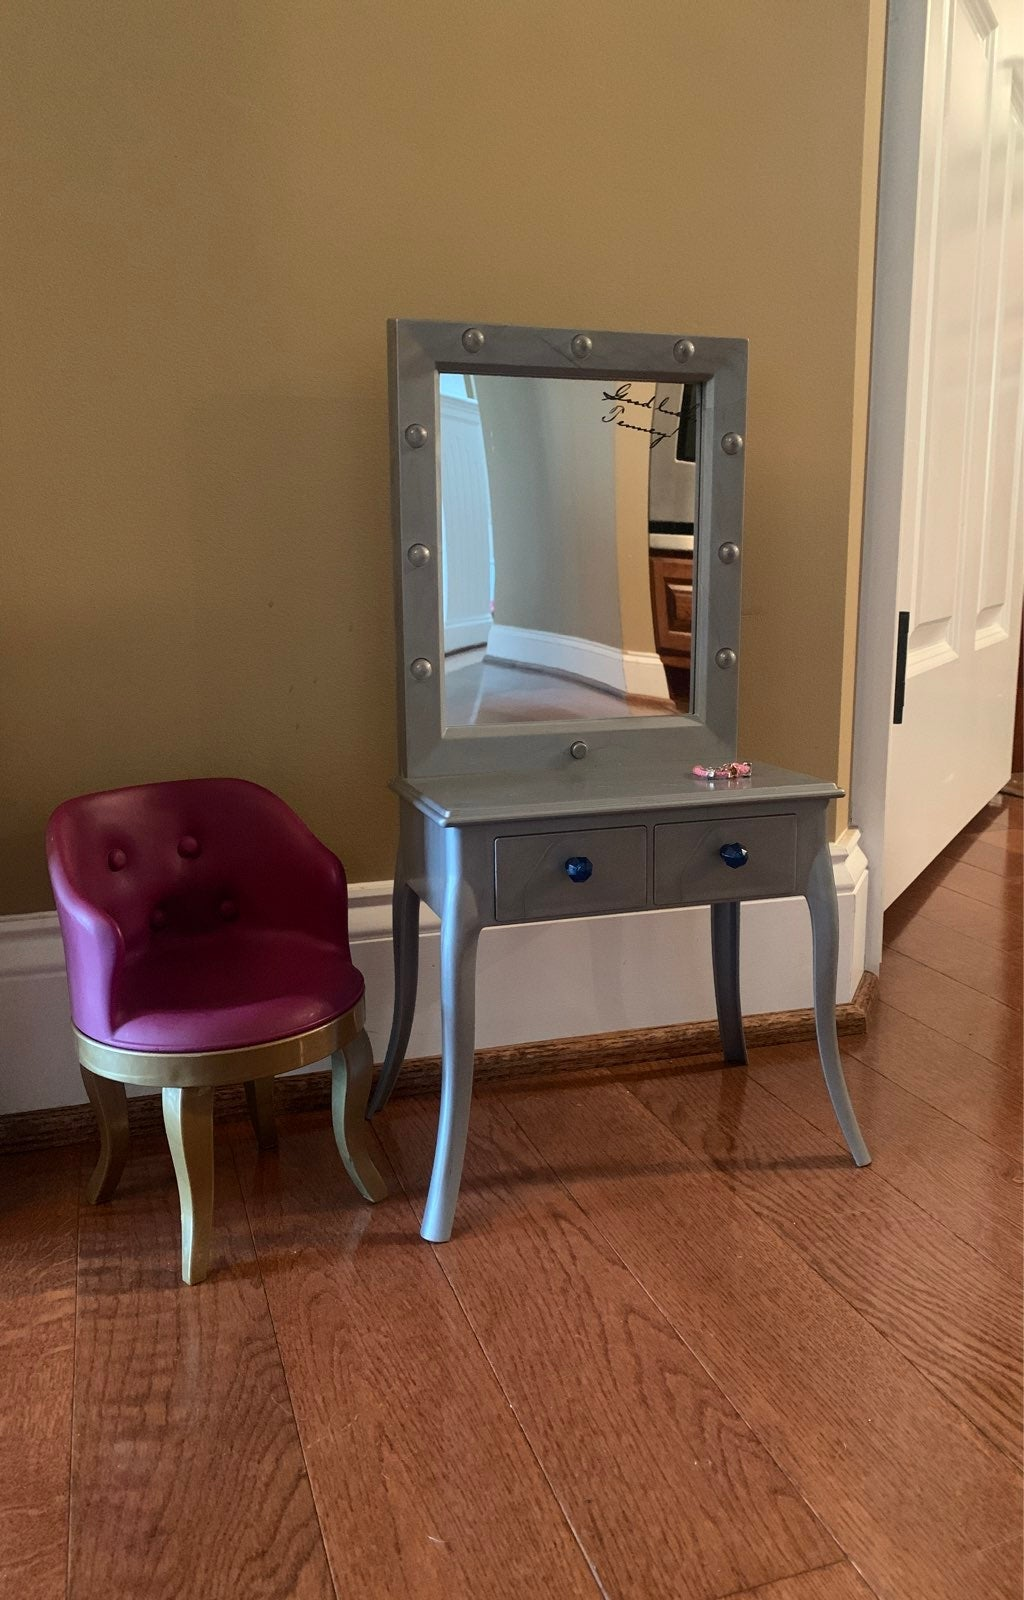 American Girl Tenney Vanity w/chair and